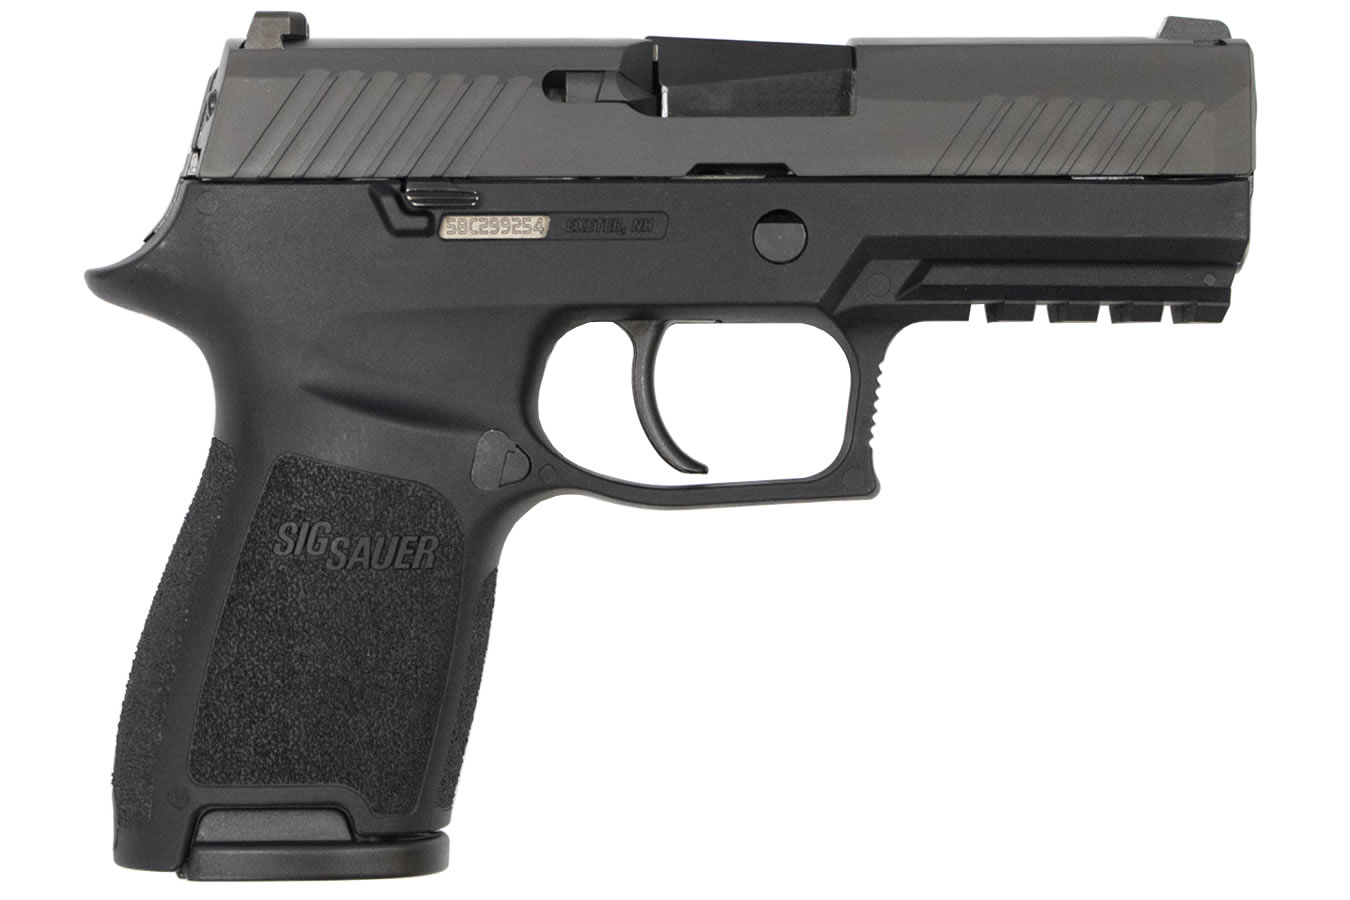 P320 COMPACT 9MM W/ CONTRAST SIGHTS